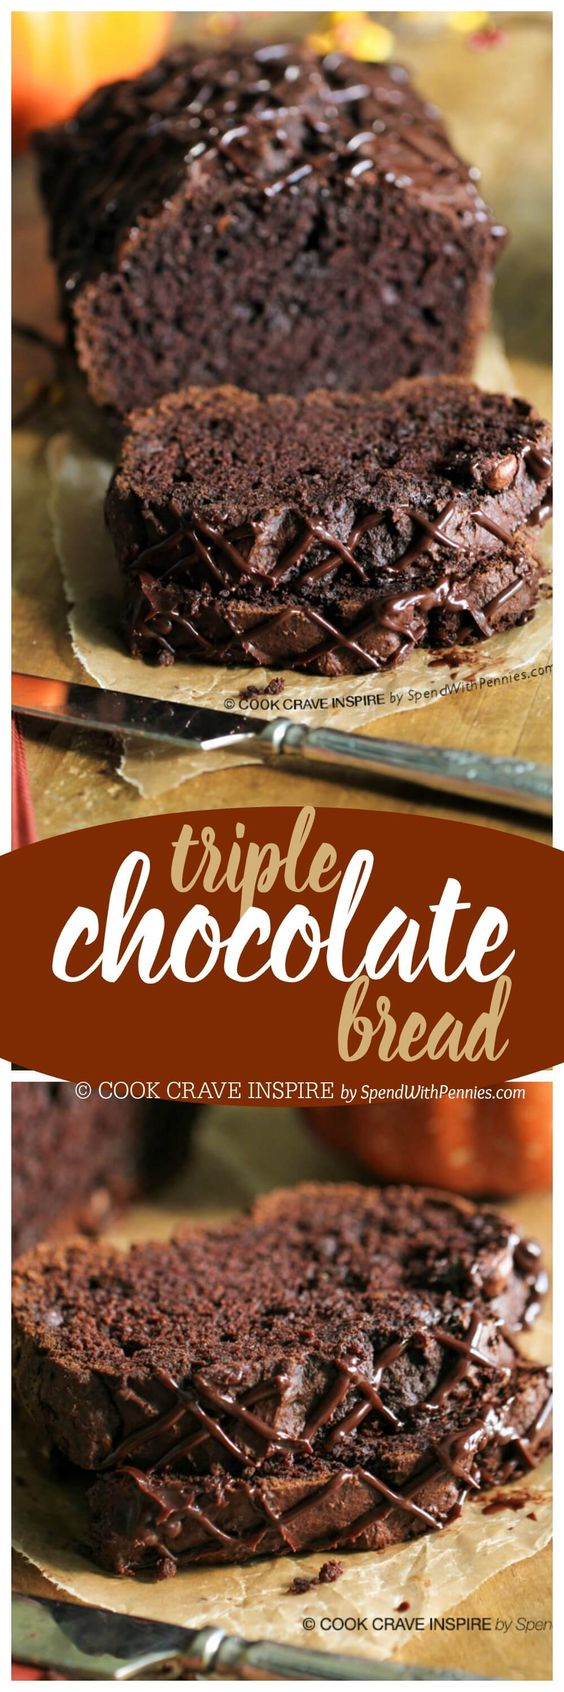 Triple Chocolate Bread Recipe via Spend With Pennies - A rich chocolatey quick bread with a secret ingredient to keep it extra moist! This loaf contains dessert and breakfast all in one! #dessertbreads #neighborgifts #homemadegifts #foodgifts #breadrecipes #flavoredbreads #sweetbreads #holidaybread #bread #homemadebread #simplebreadrecipes #simplebread #simplerecipes